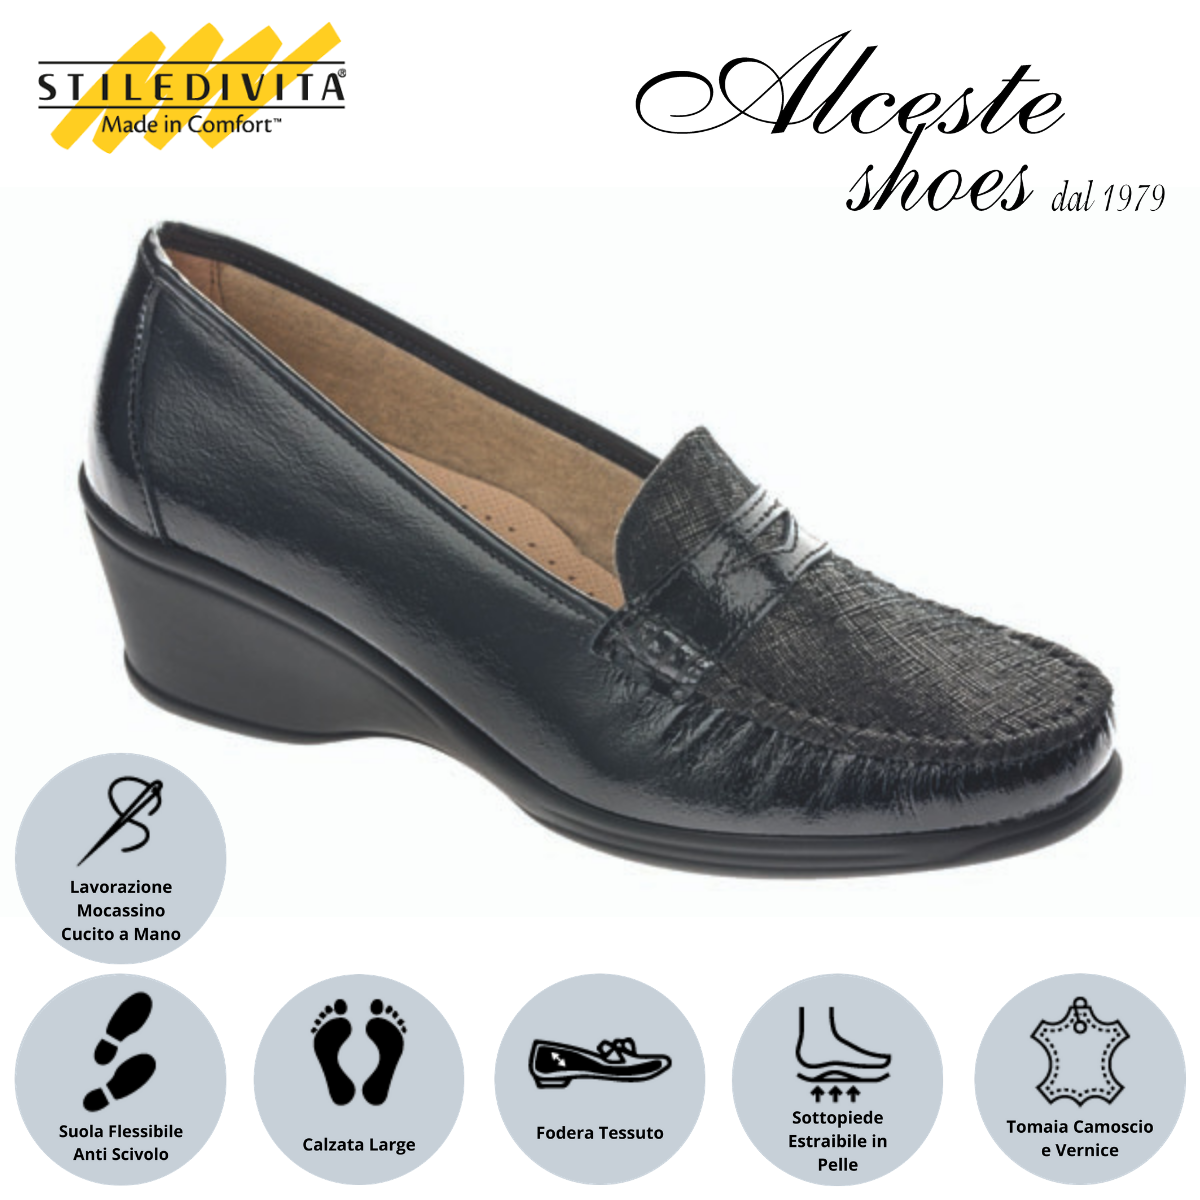 Mocassino Stiledivita art. 2584 nero